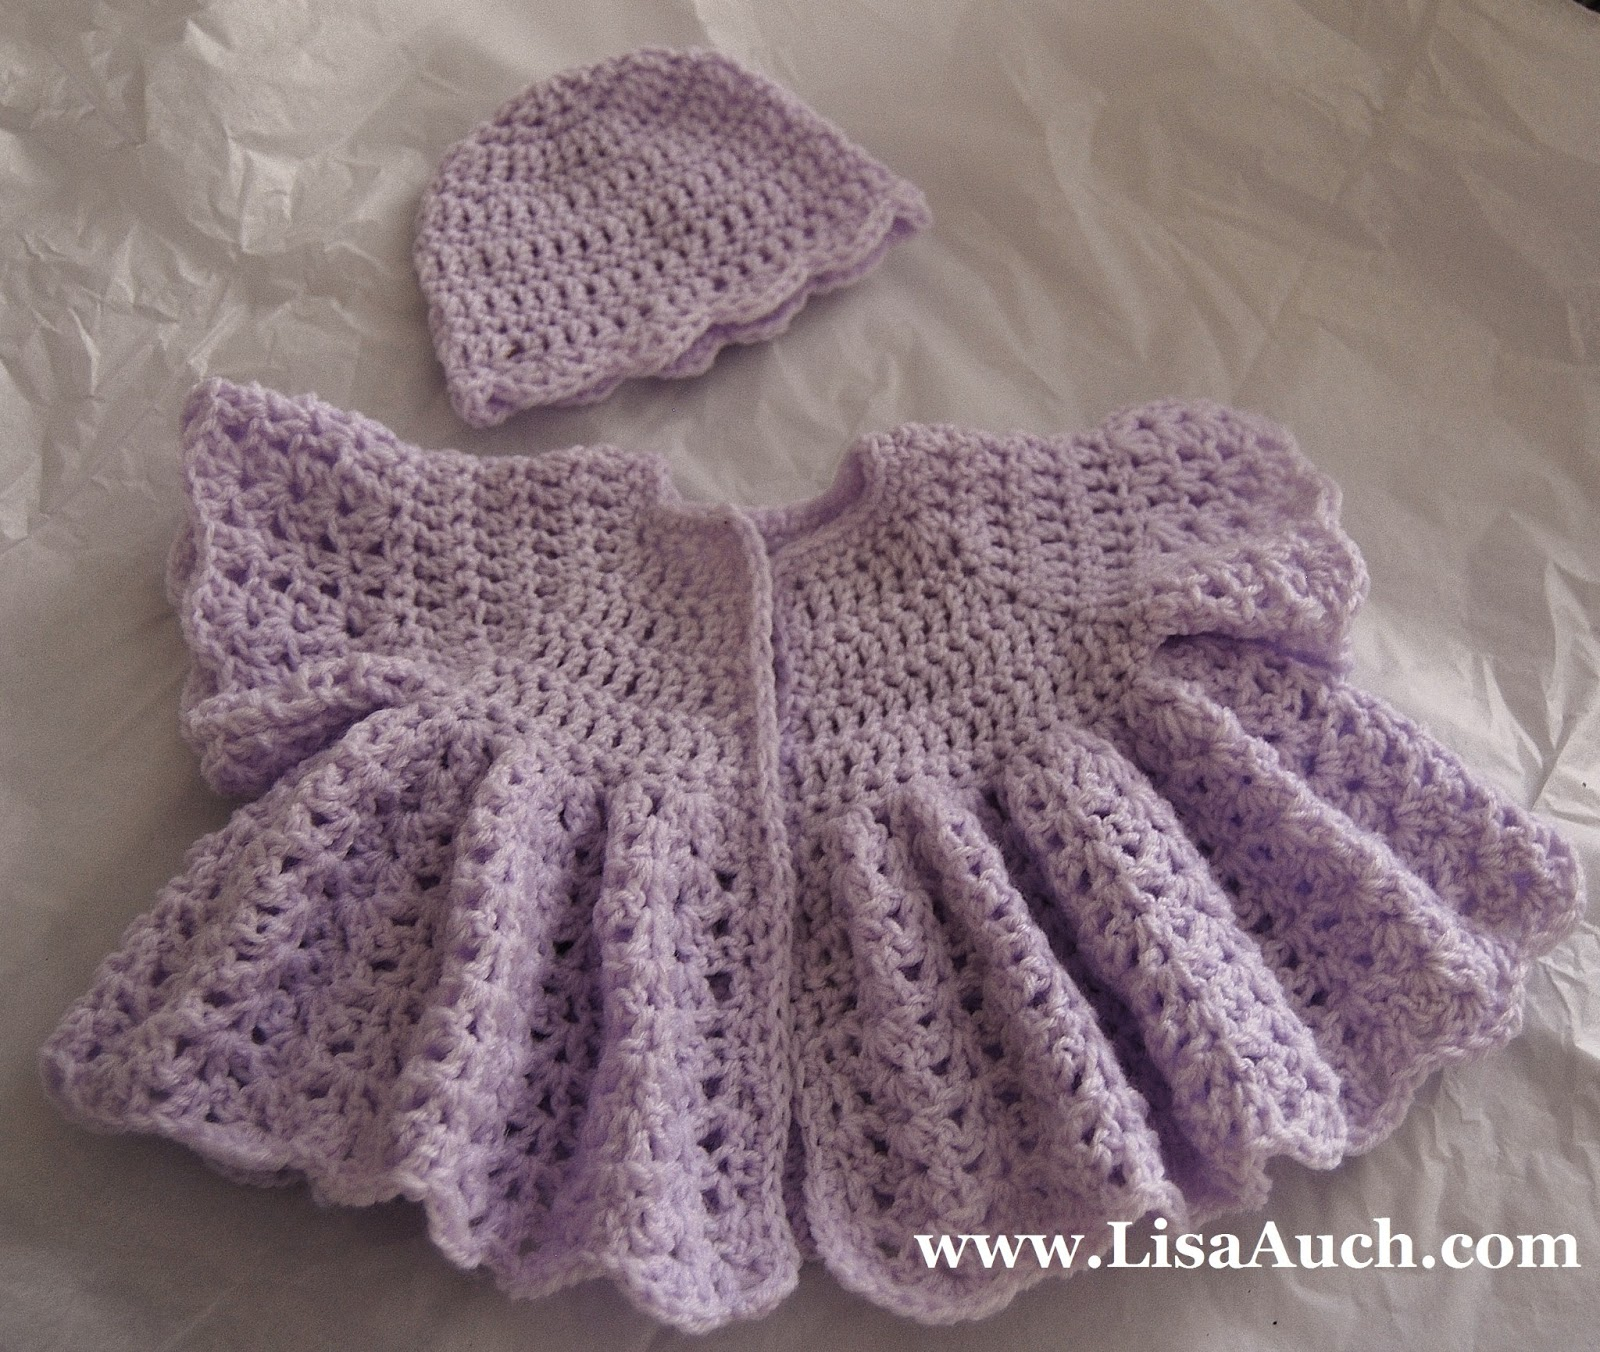 Free Pattern Crochet Sweater : Free Crochet Toddler Sweater Patterns images